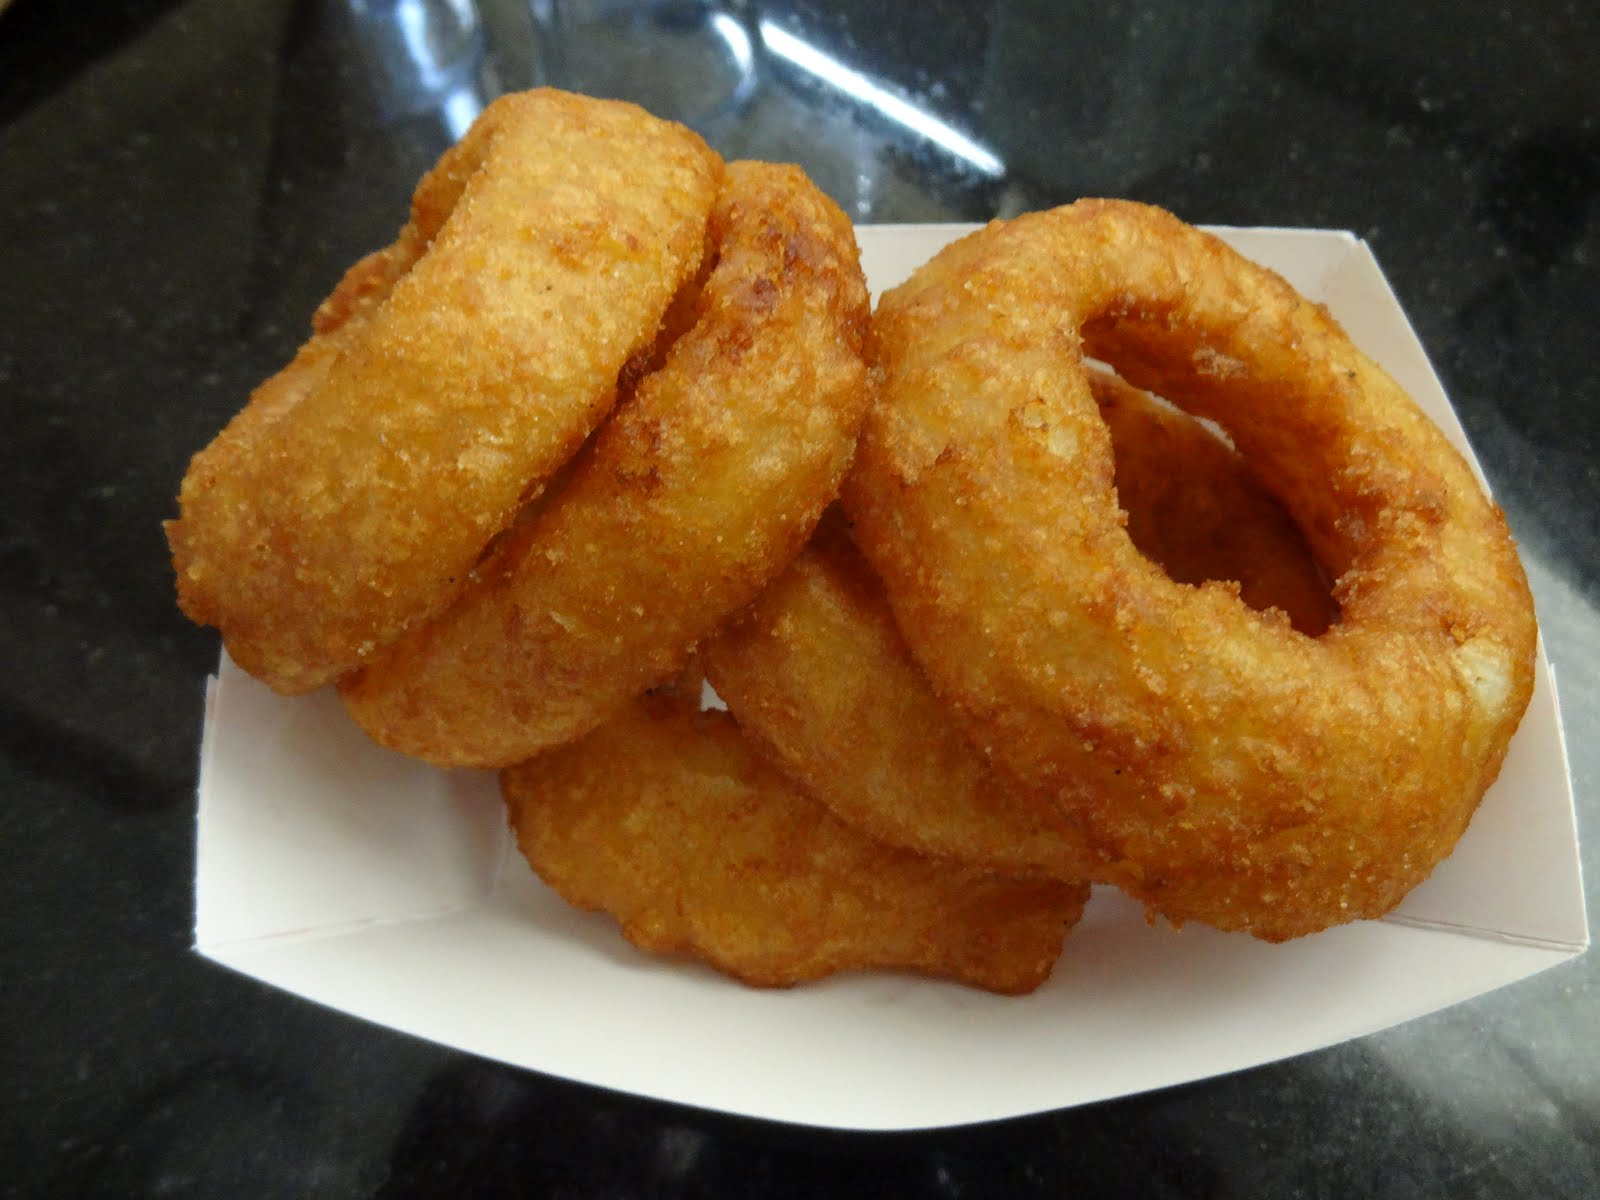 June 22nd is National Onion Rings Day!